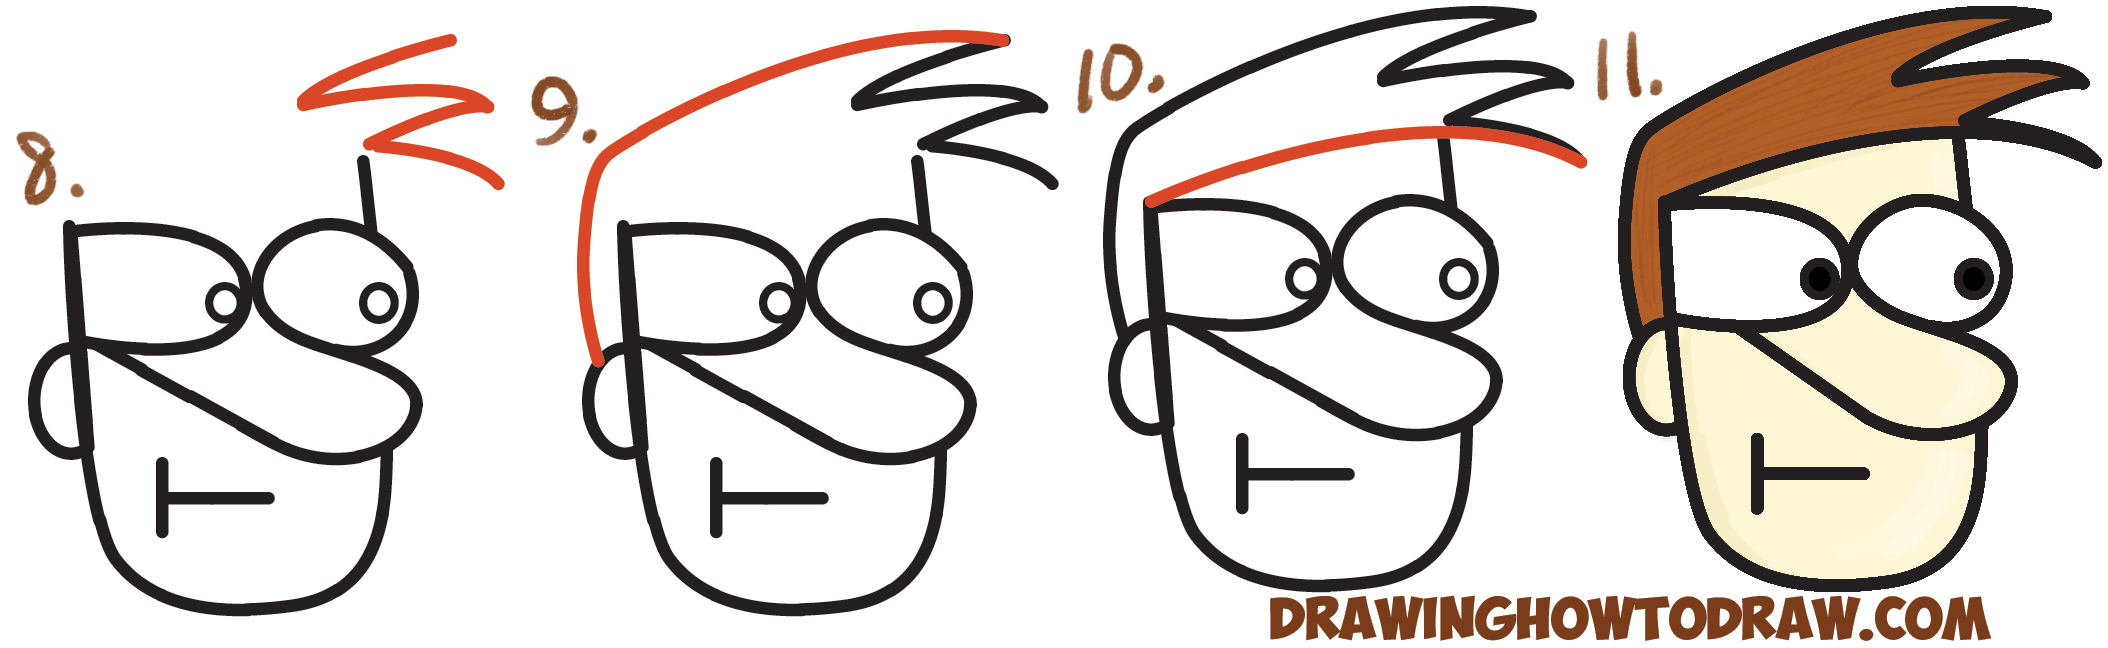 Learn How to Draw a Cartoon Face with Alphabet Letters with Simple Steps Drawing Lesson for Children and Beginners